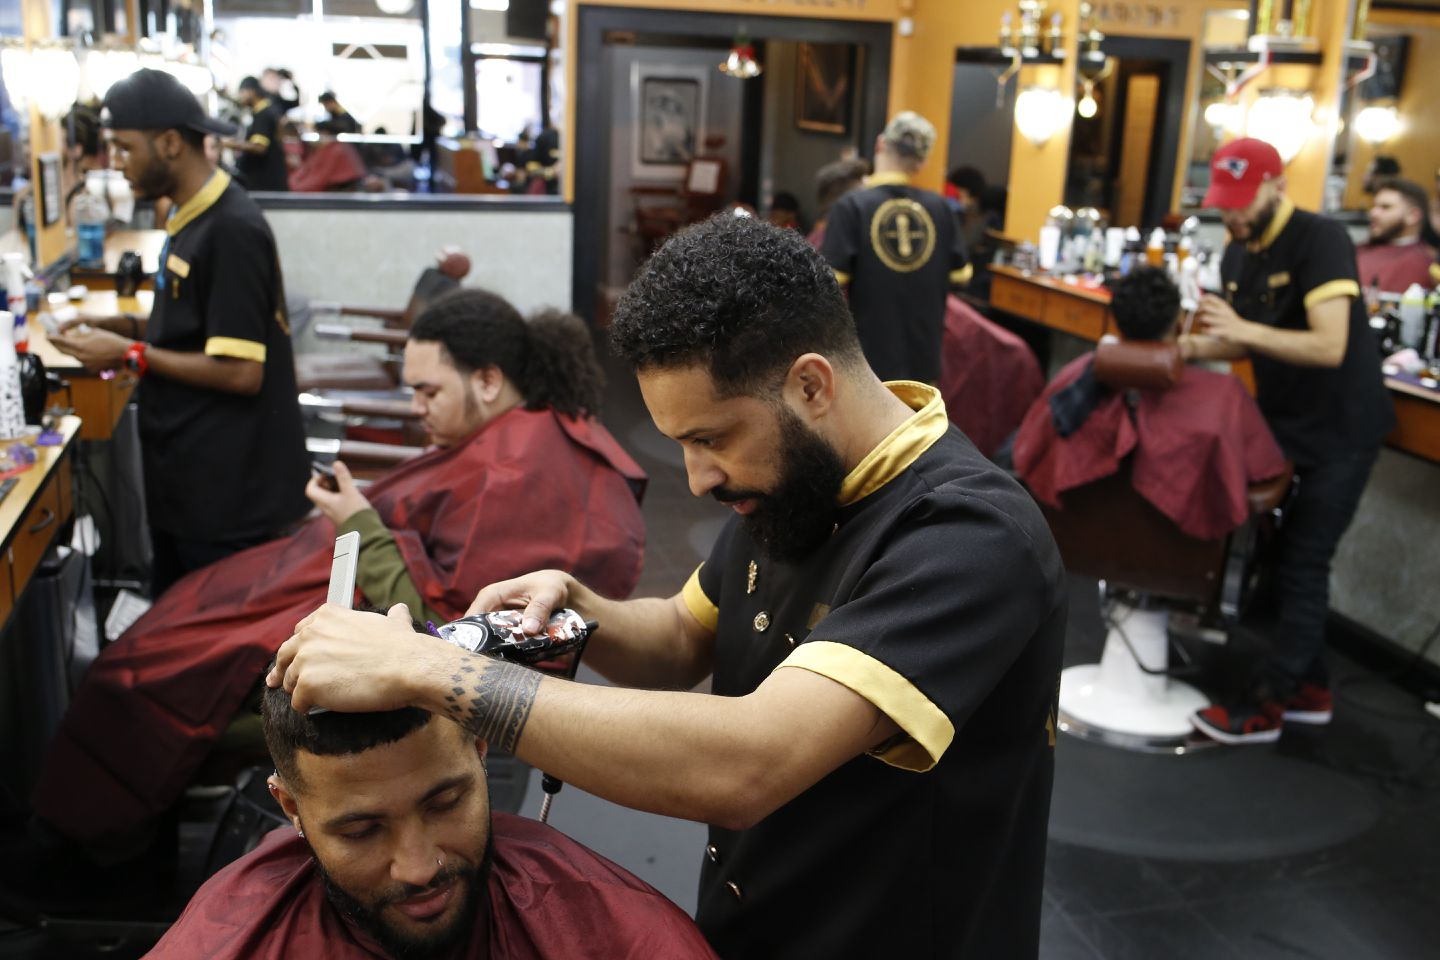 Lex Andre Daluz, owner of Marvelous Cuts, shaped up Amalex Veiga's hair.